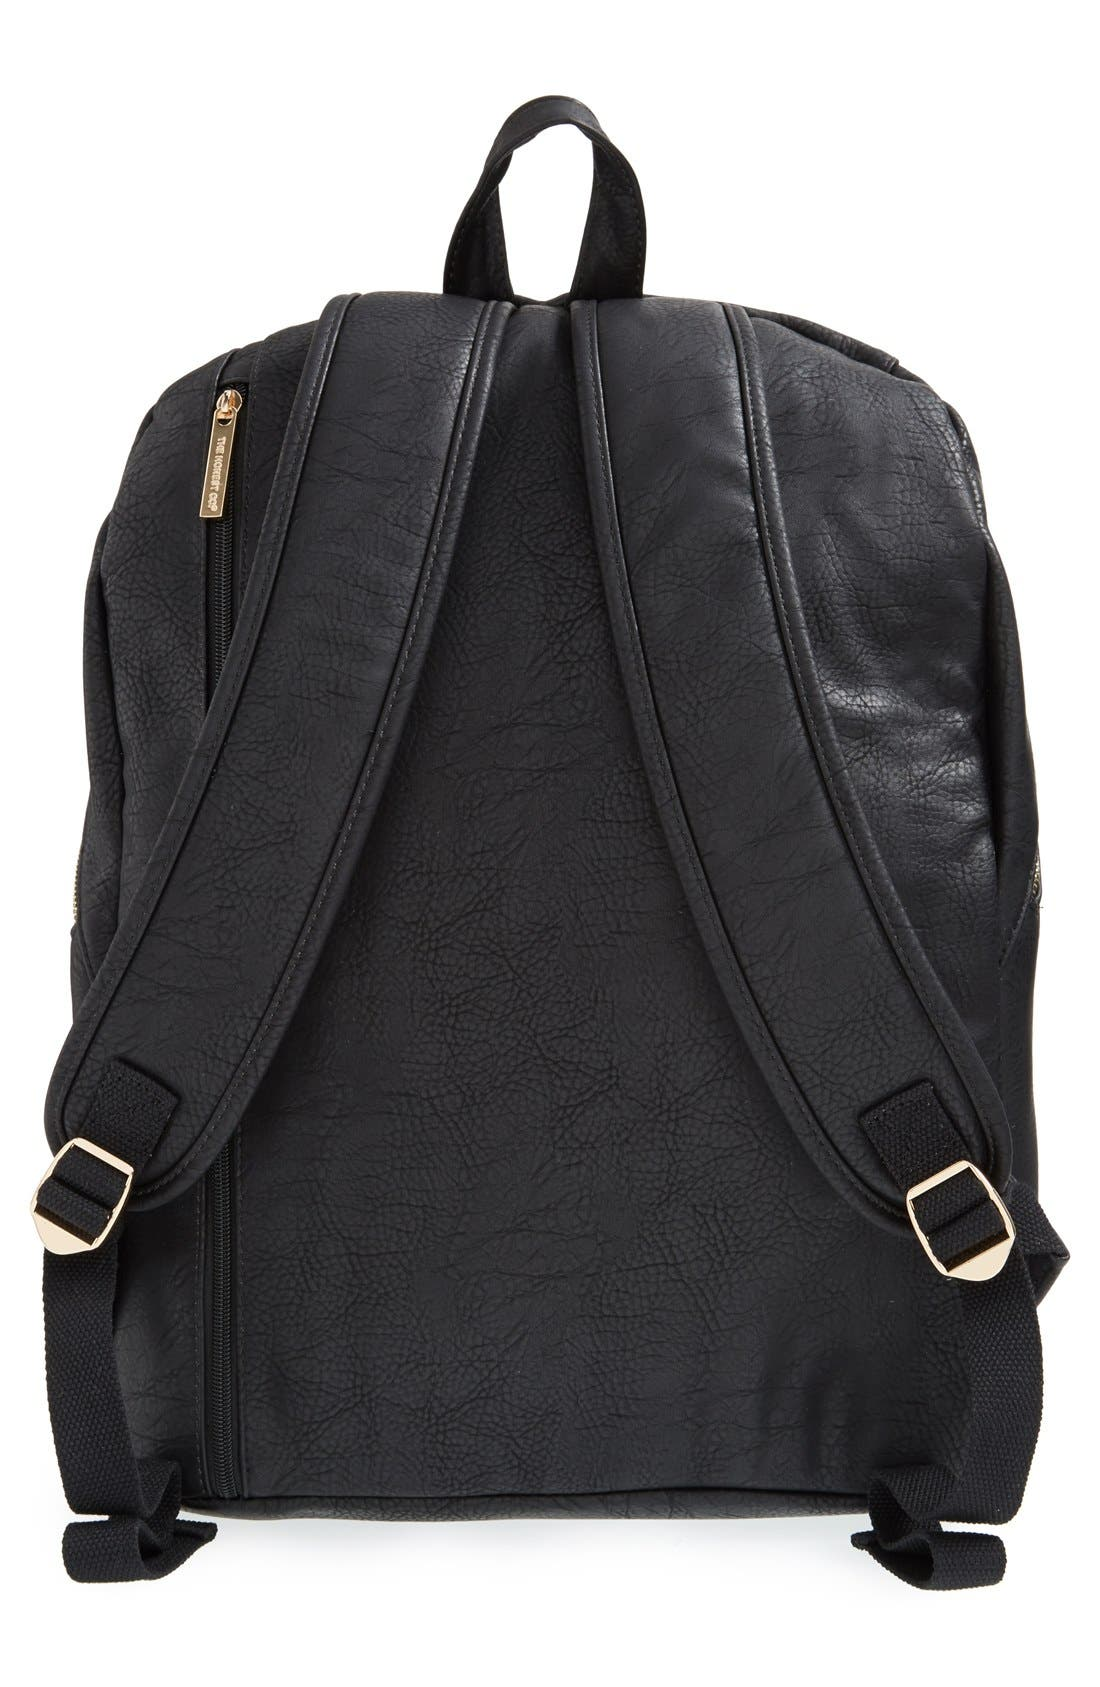 THE HONEST COMPANY, 'City' Faux Leather Diaper Backpack, Alternate thumbnail 2, color, BLACK